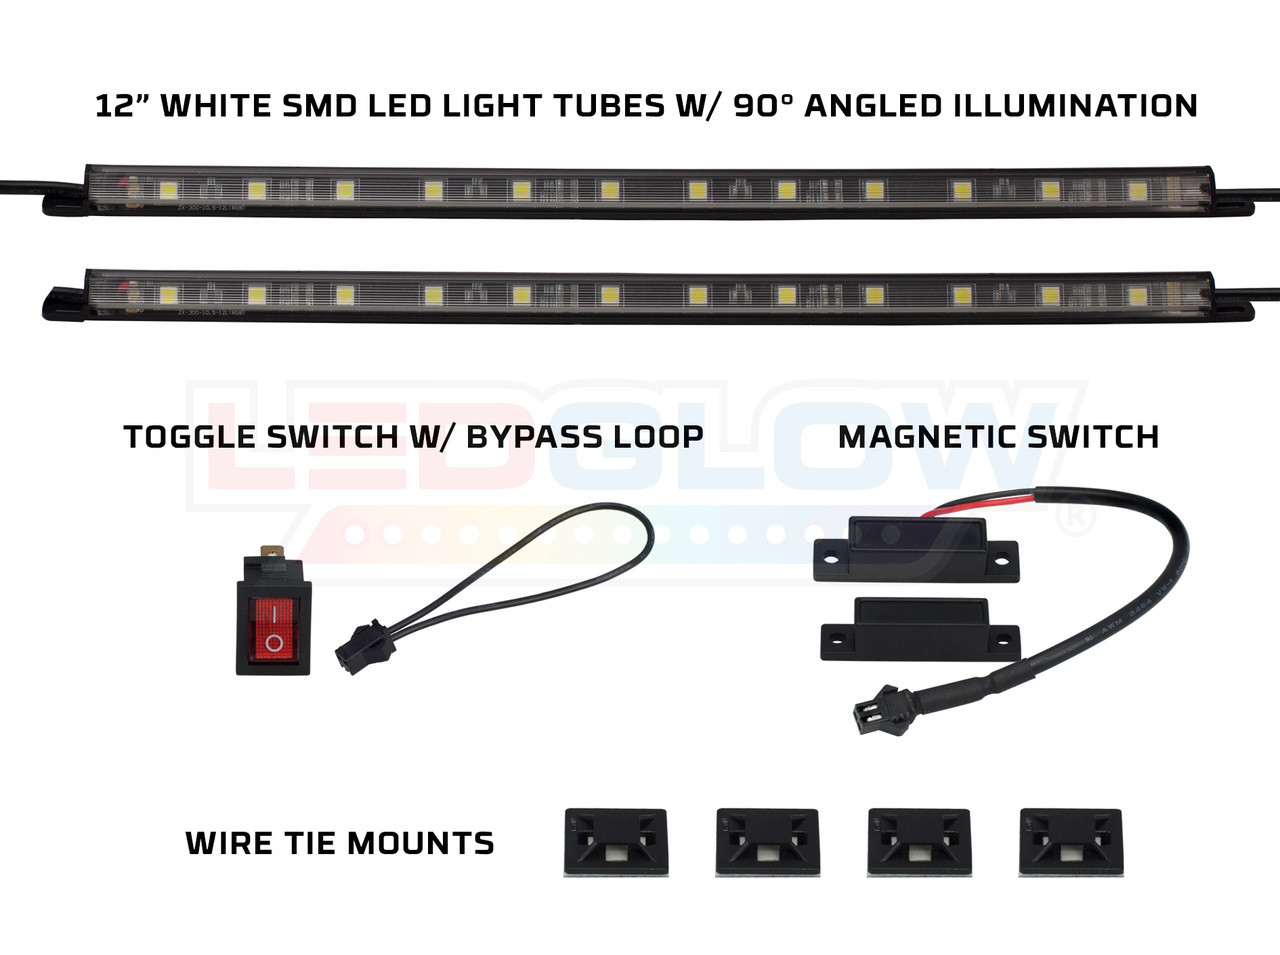 2pc 12 white smd led light tubes toggle switch magnetic switch [ 1280 x 955 Pixel ]